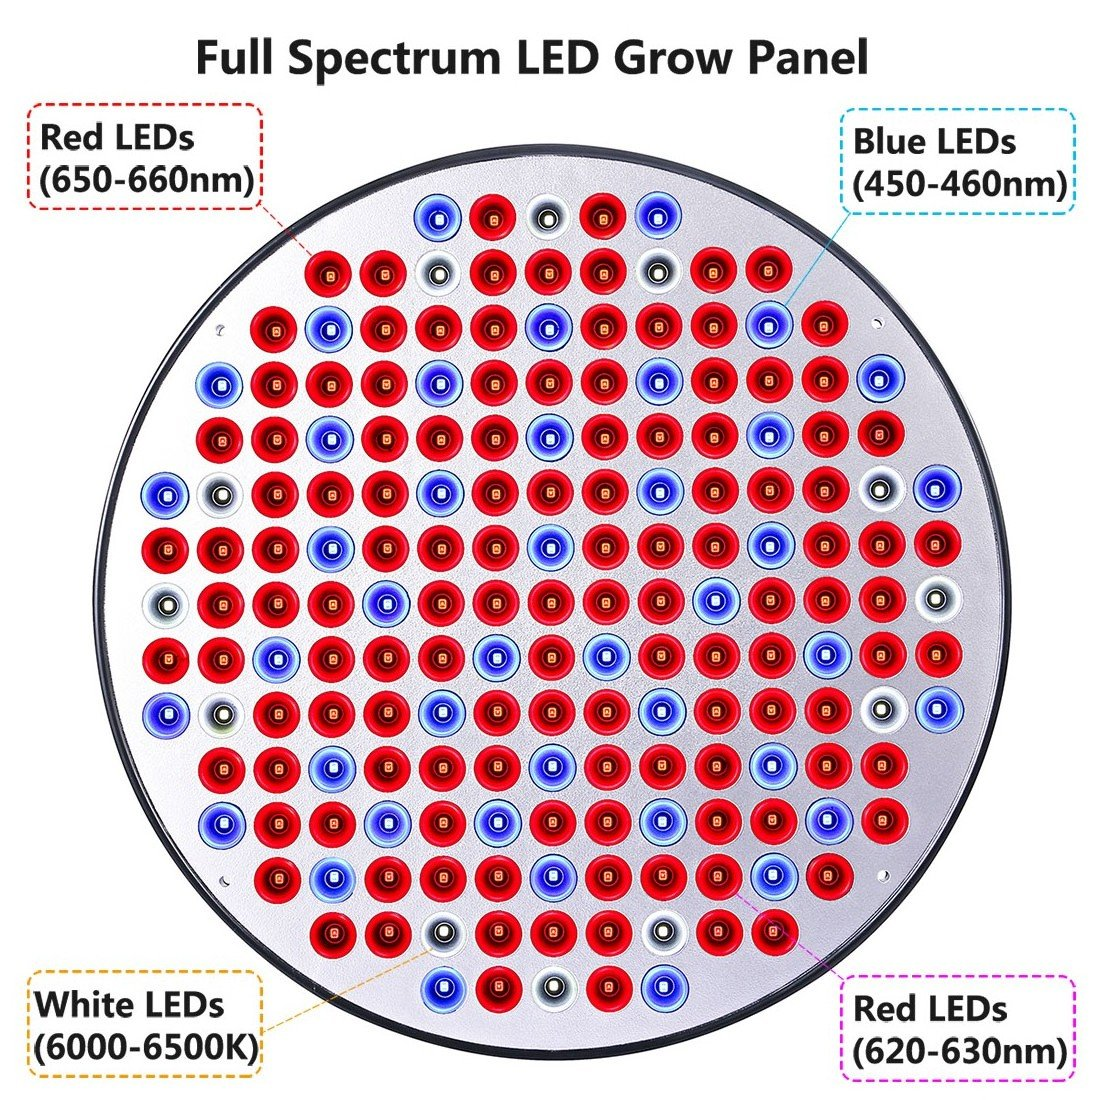 KINGBO 50W UFO LED Grow Light Panel Full Spectrum with Switch for Indoor Plants Seeding Growing and flowering. by KINGBO LED (Image #5)